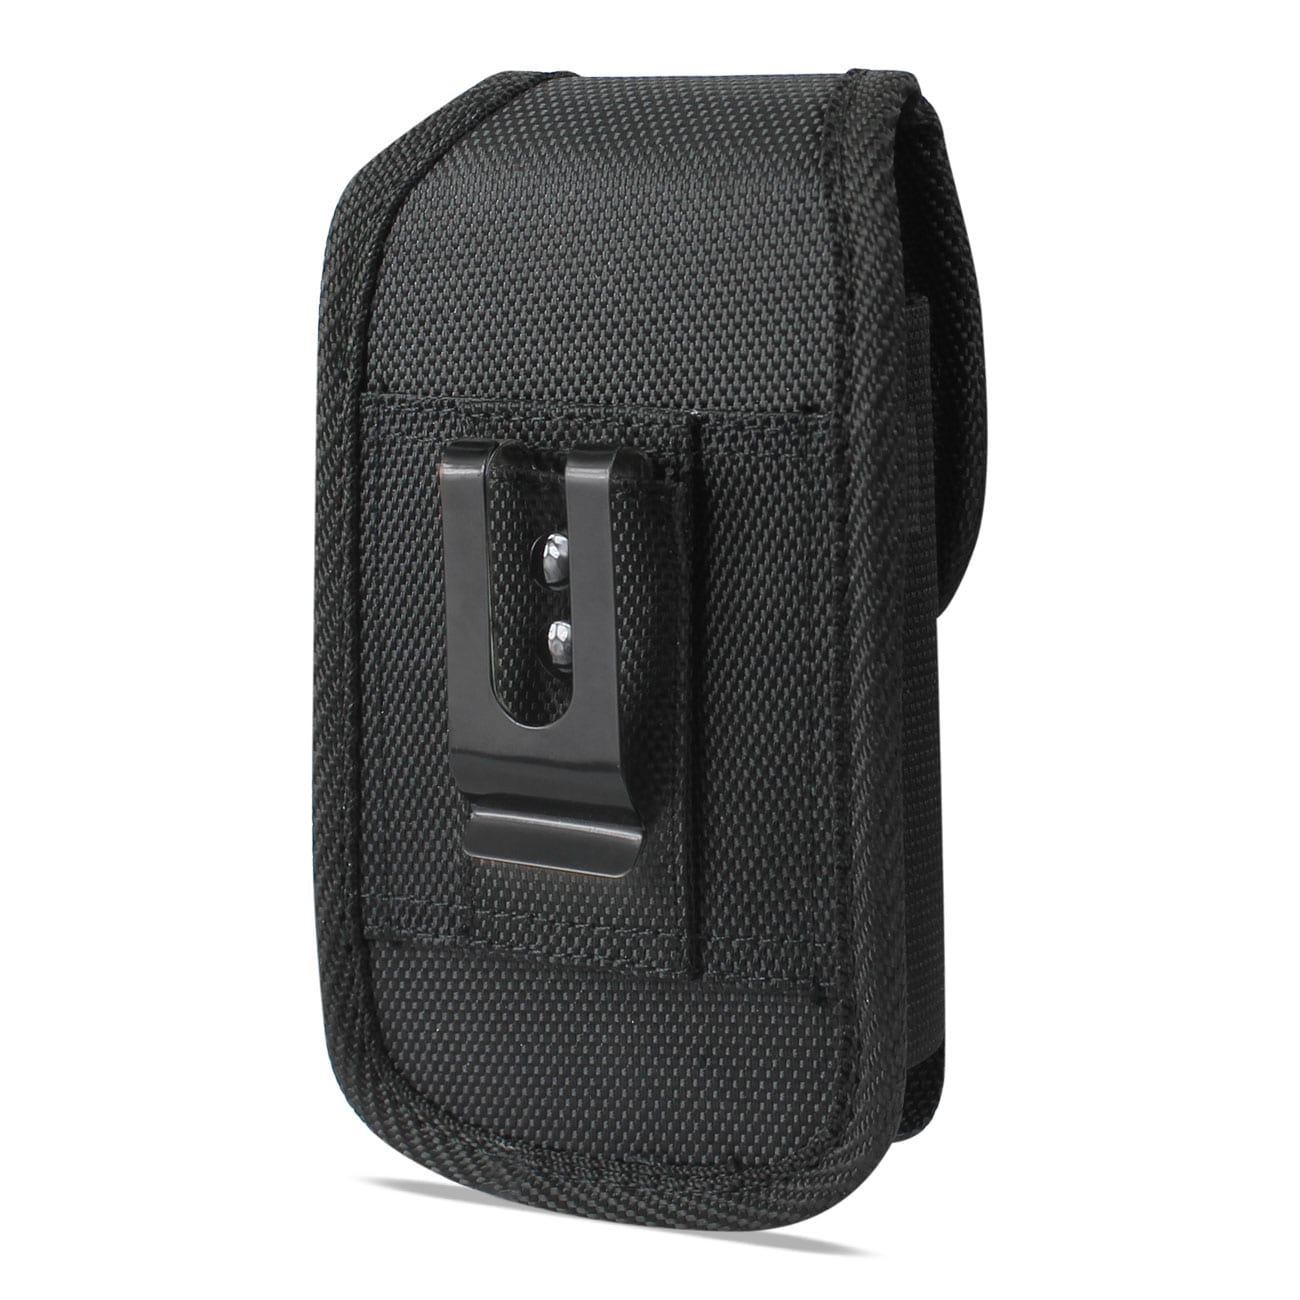 Vertical Rugged Pouch With Buckle Clip In Black (6.6X3.5X0.7 Inches)